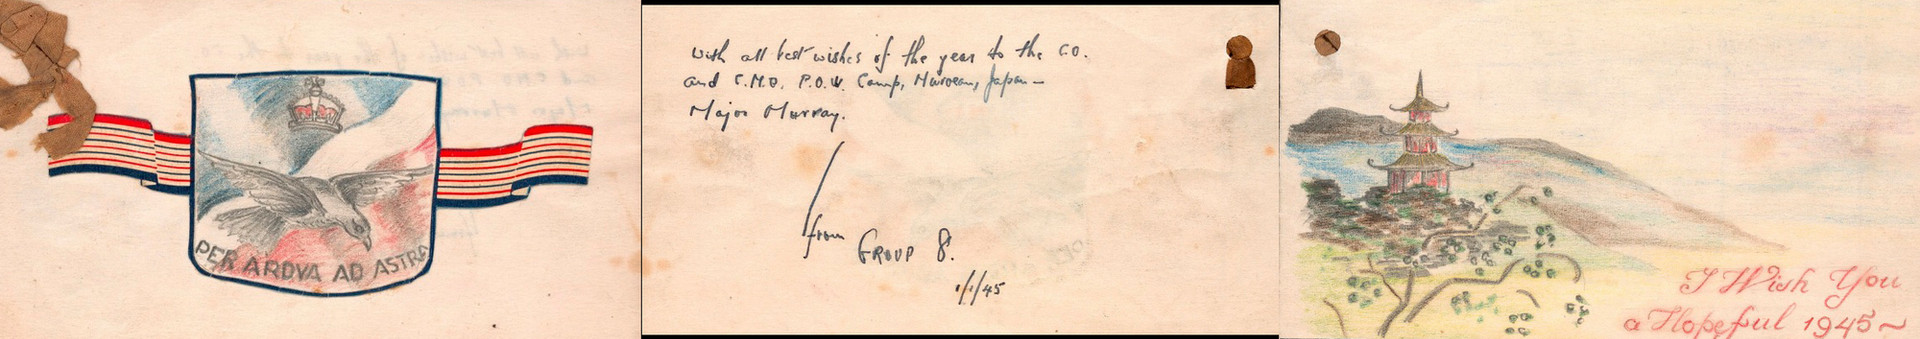 Group 8 New Year 1945